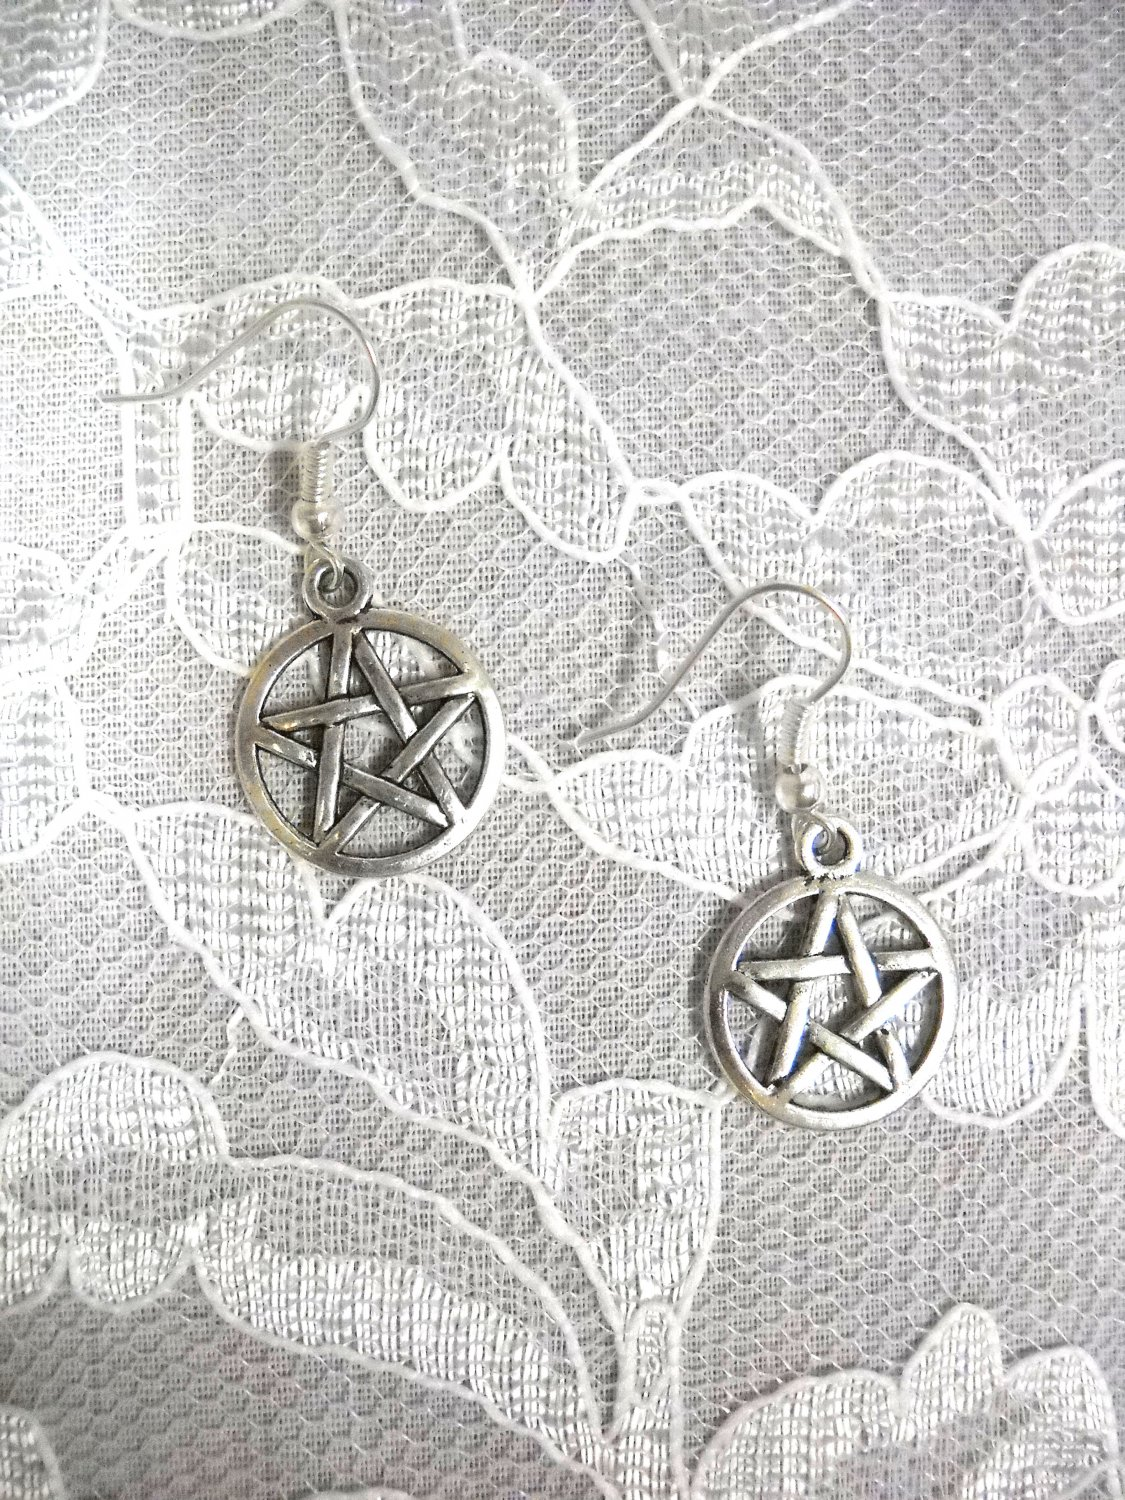 NEW WOVEN PENTACLE STAR 5 POINT STARS DANGLING ALLOY SILVER CHARMS EARRINGS